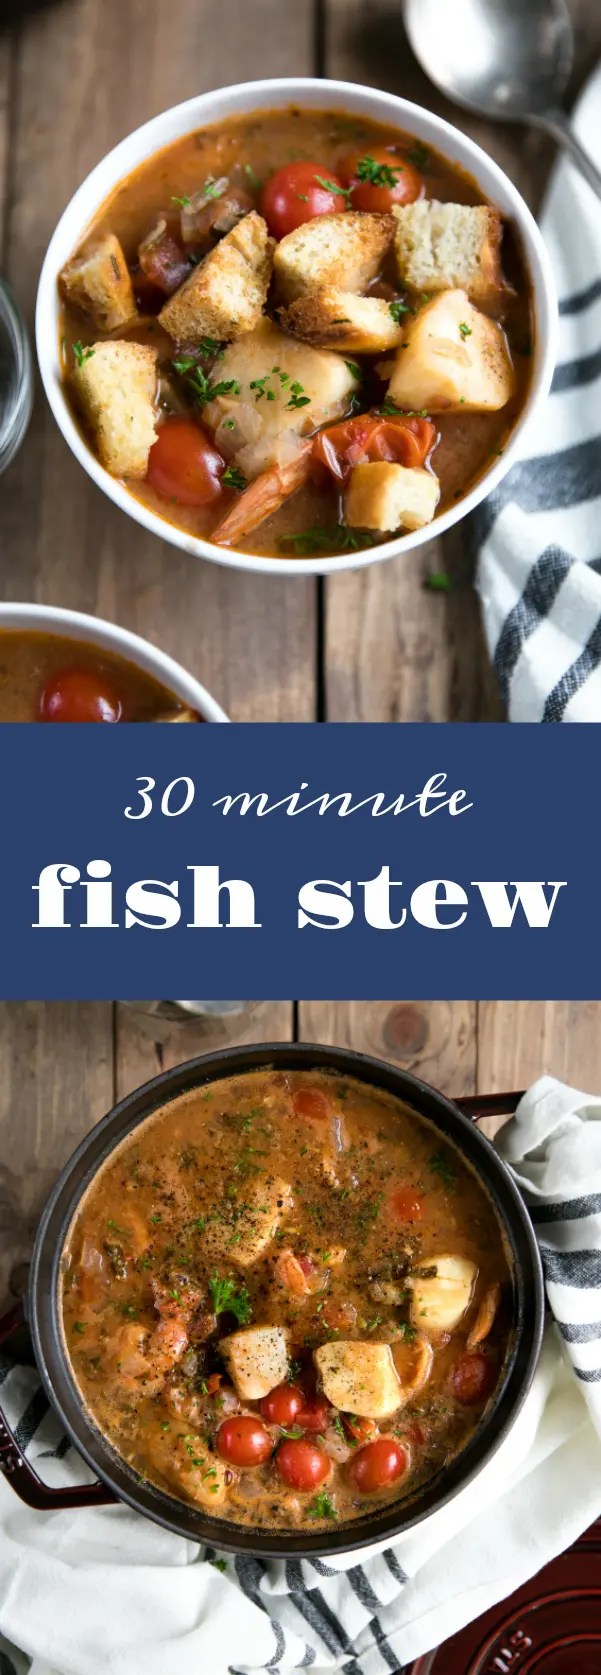 Easy 30 Minute Fish Stew #fish #shrimp #seafood #stew #healthy #30minutes #easyrecipe via @theforkedspoon